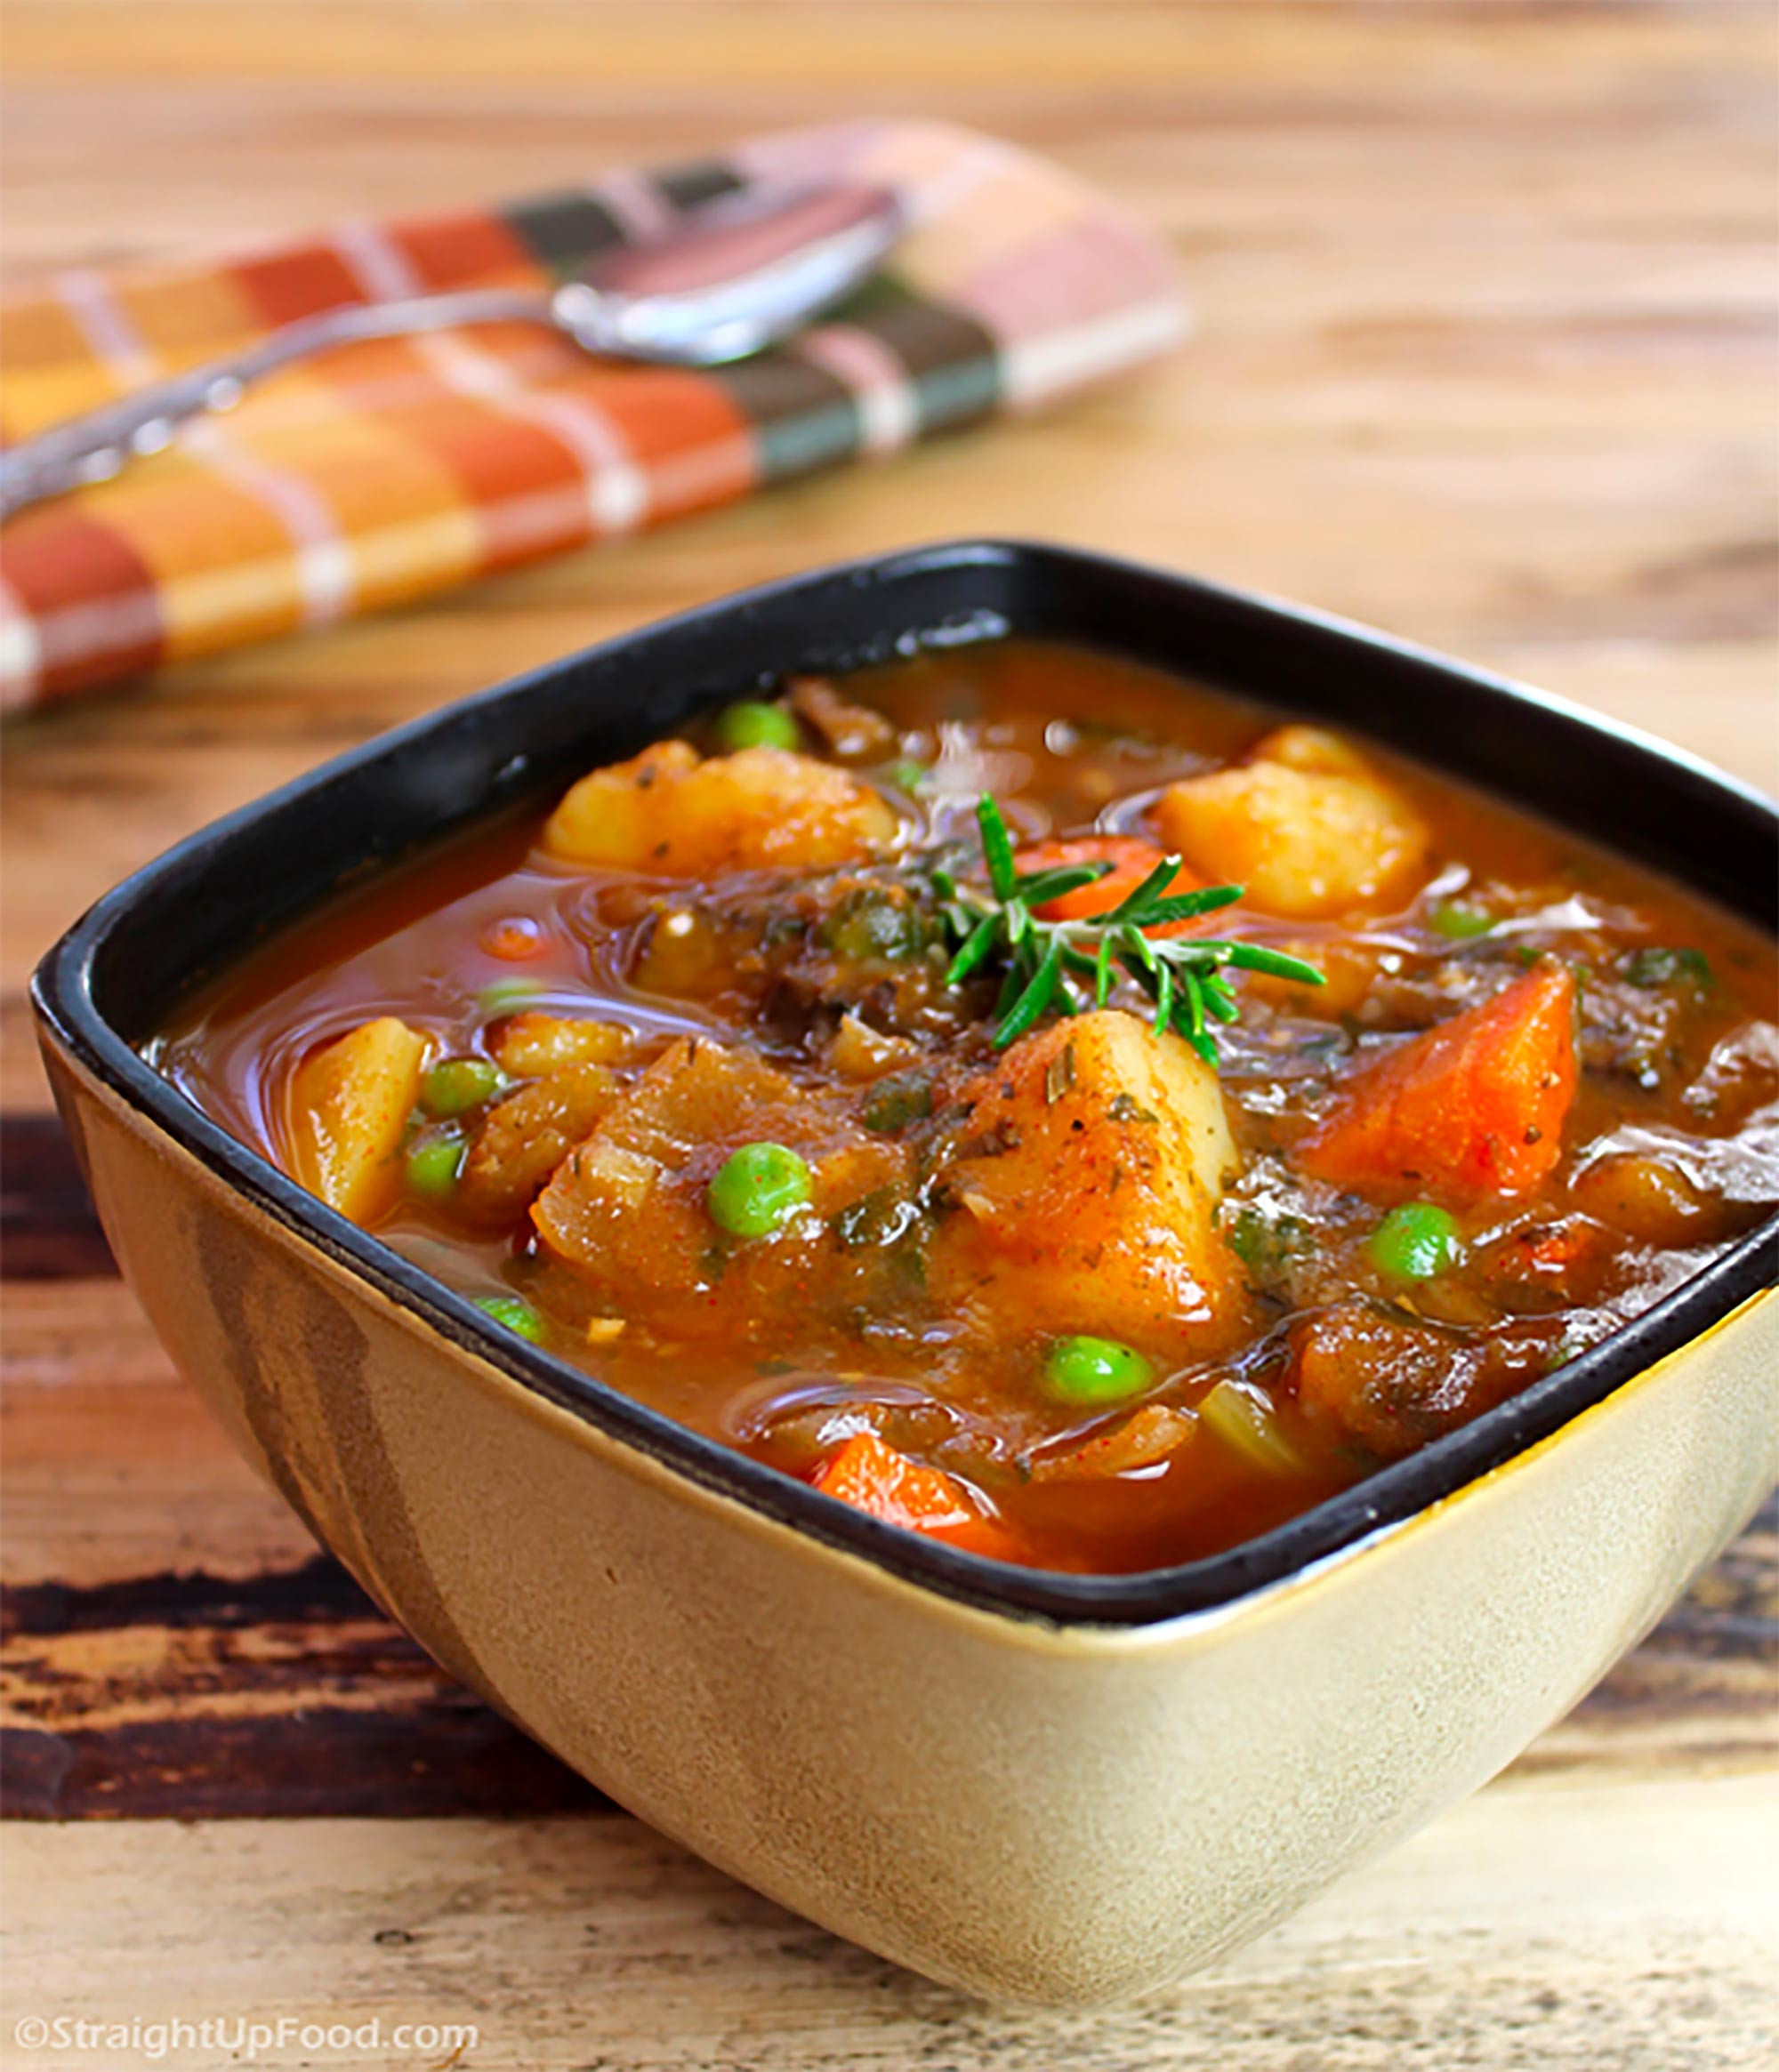 Winter Stew Recipes  Healthy Vegan Winter Soup Recipes to Keep You Warm This Winter